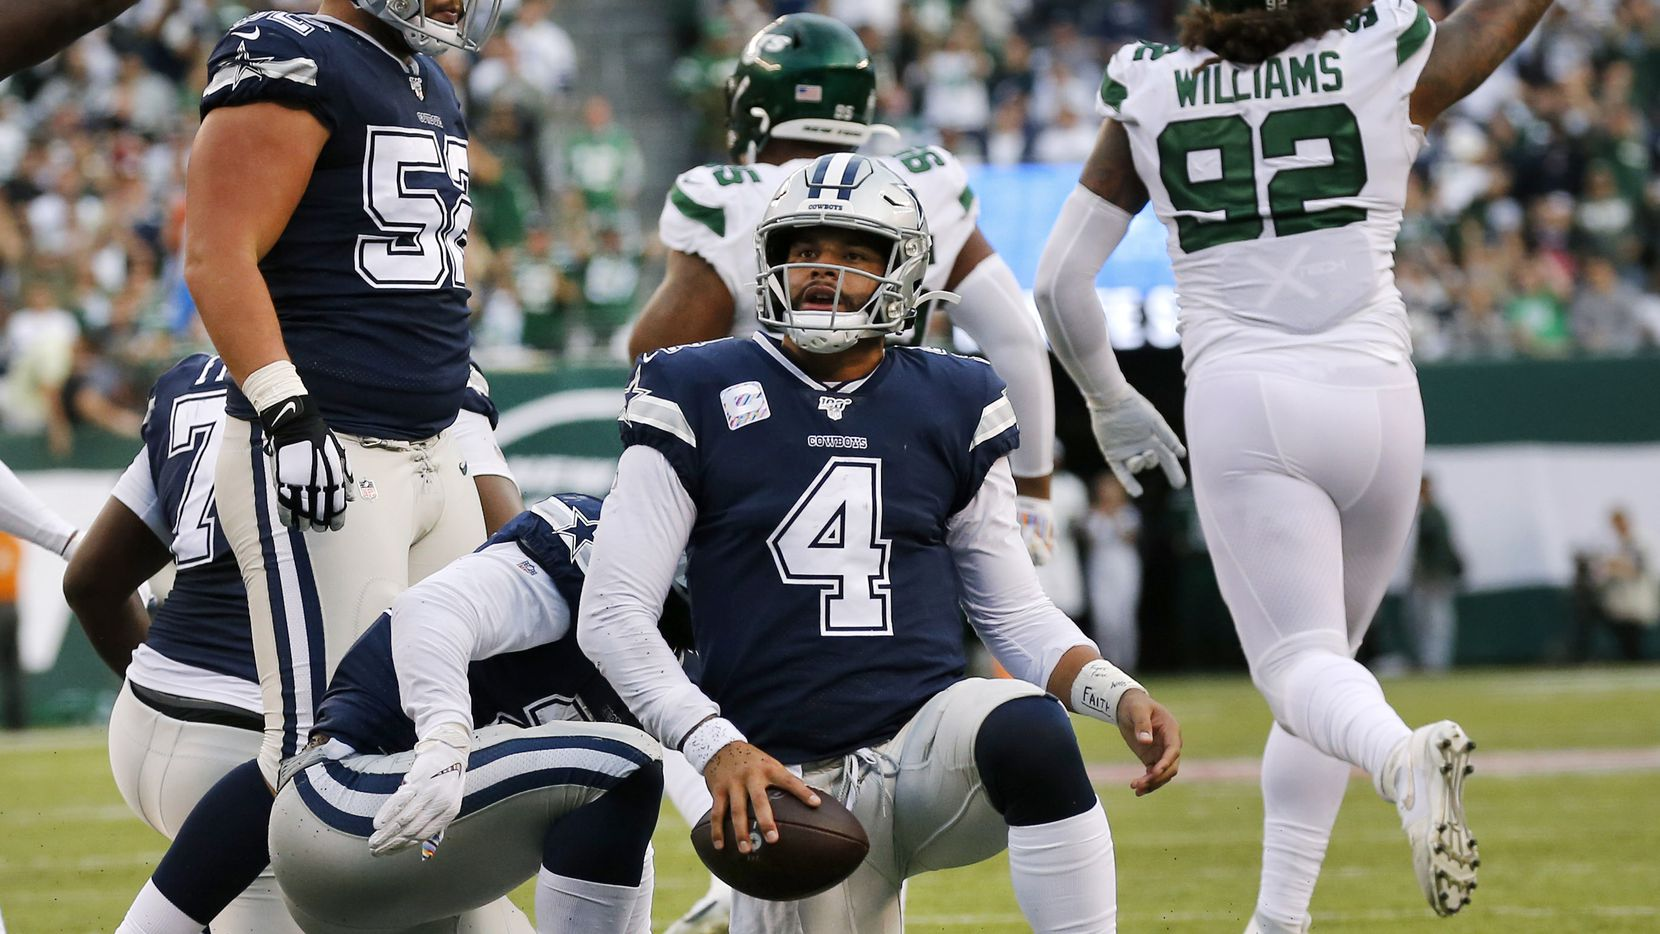 Dallas Cowboys quarterback Dak Prescott (4) gets back to his feet after being stopped short on 4th down and 2 against the New York Jets in the second quarter during at MetLife Stadium in East Rutherford, New Jersey, Sunday, October 13, 2019. Rookie defensive tackle Quinnen Williams, the No. 3 overall pick, (right) celebrates after chasing down Prescott from behind.